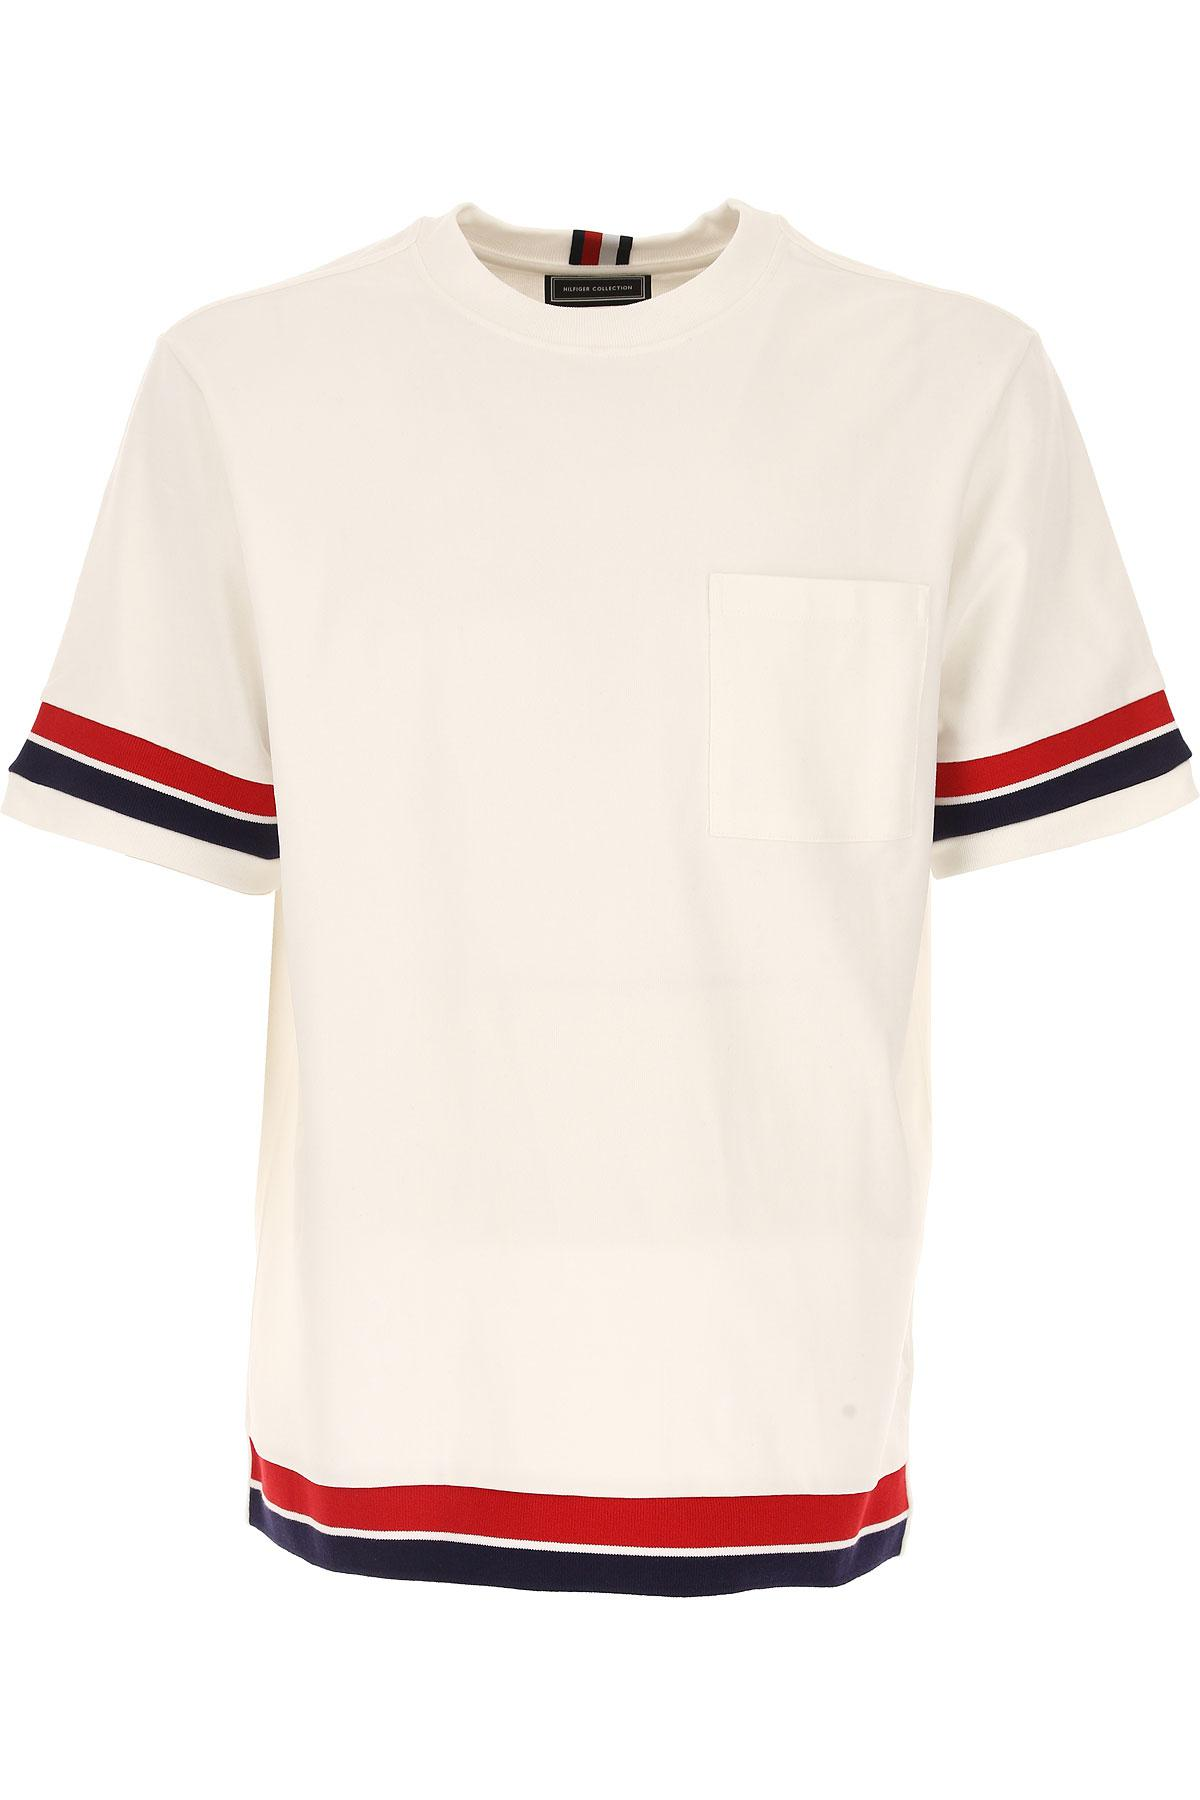 b30d3ba54aad Lyst - Tommy Hilfiger Clothing For Men for Men